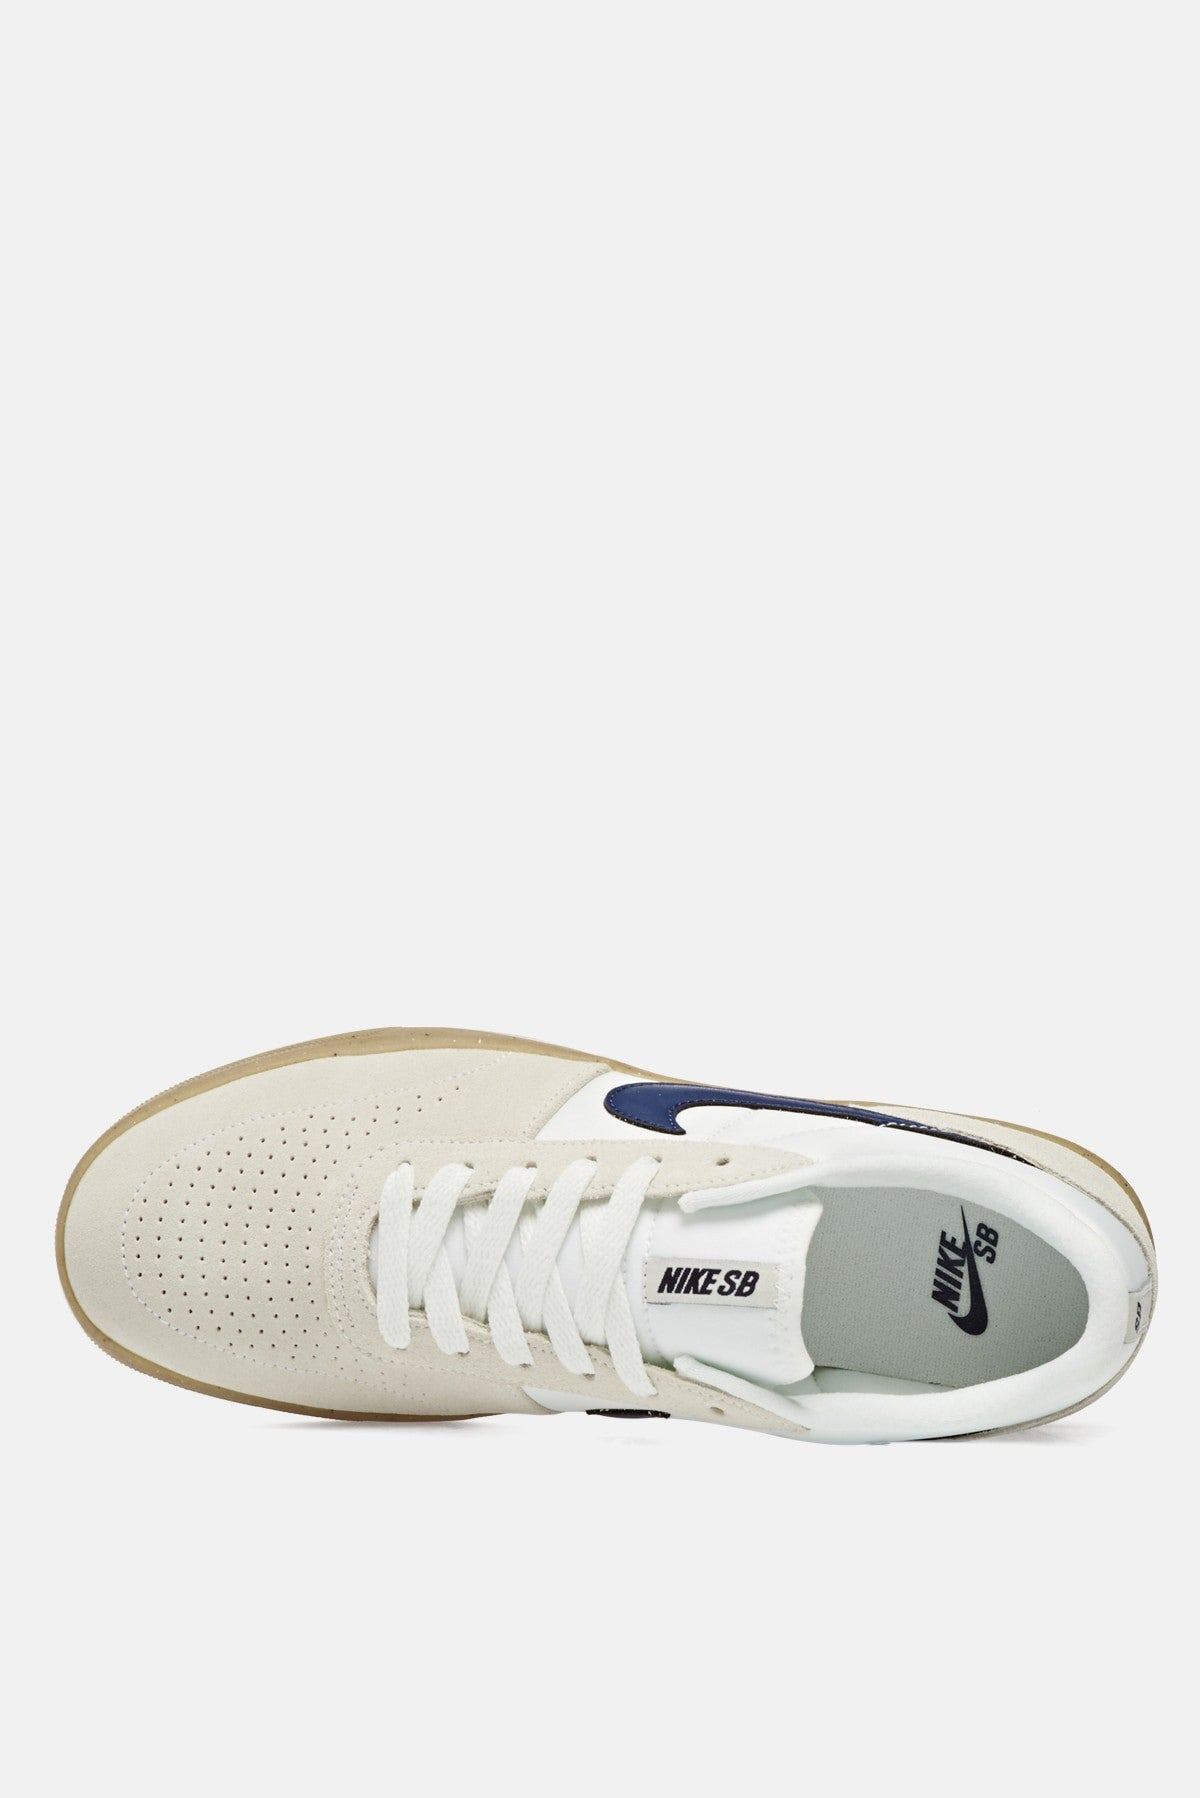 8670a63499ef ... Summit White Blue Void-White-Gum Light Brown-Blue ...